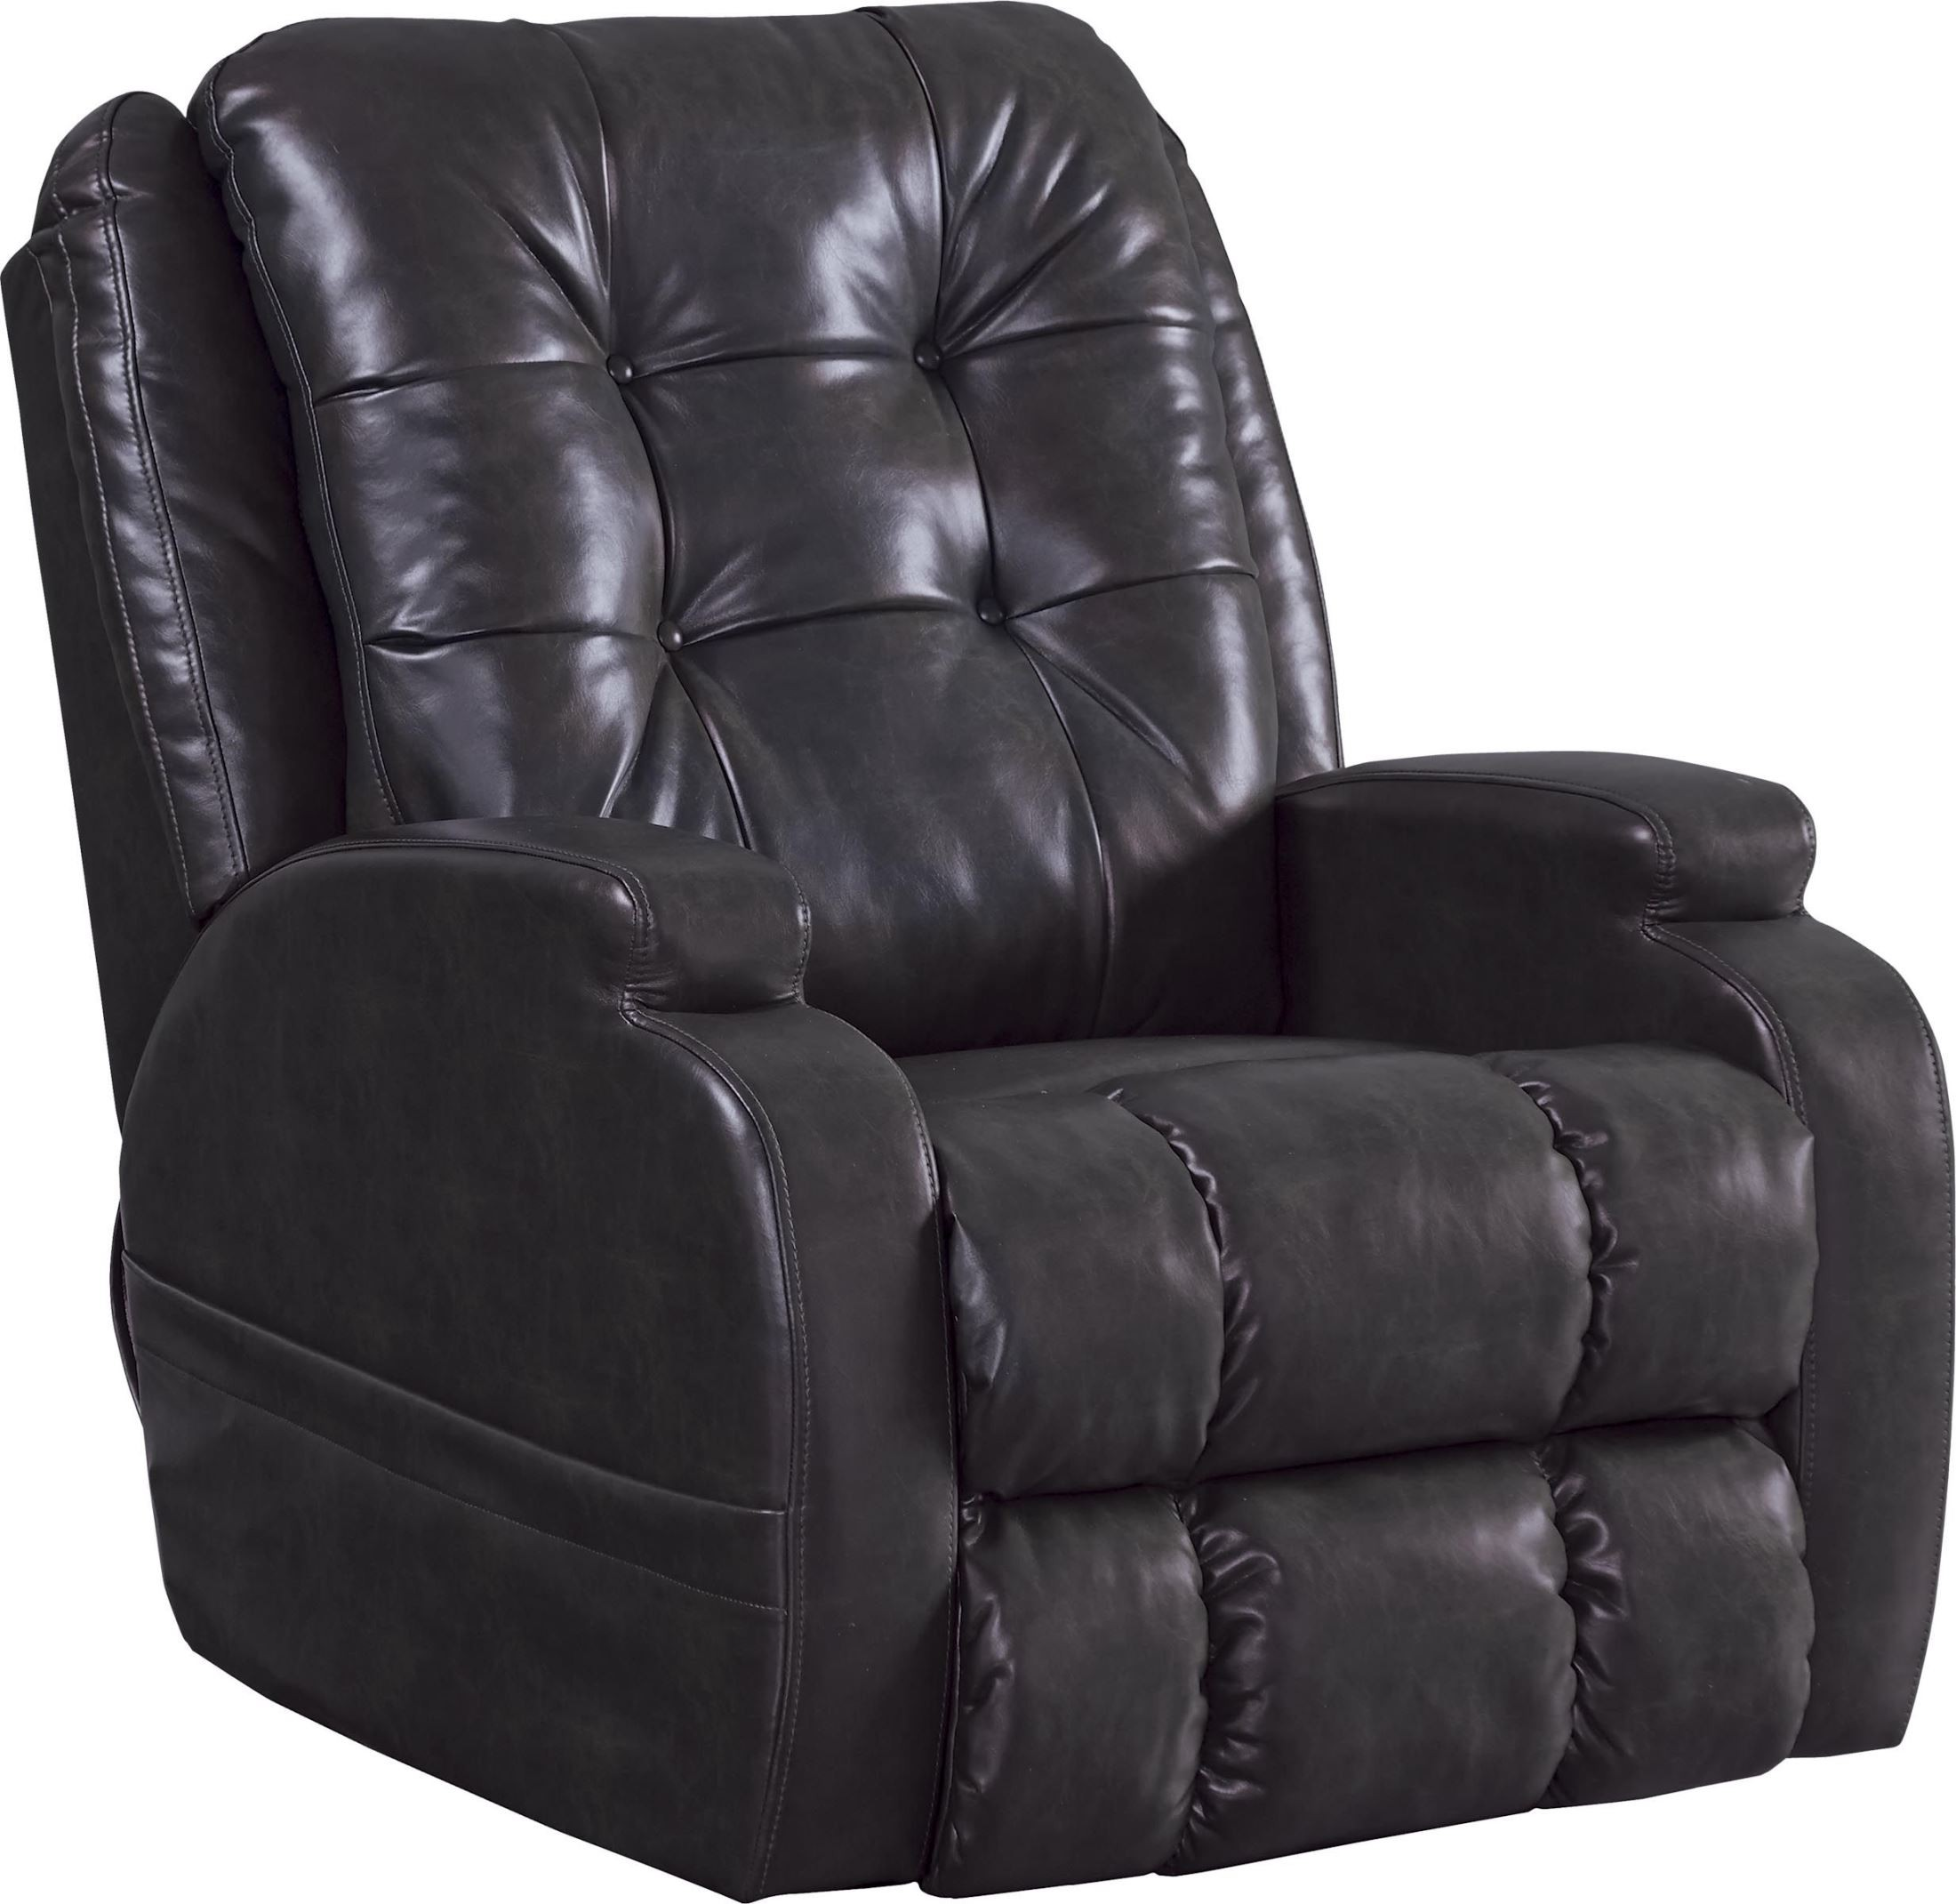 Jenson coal power lift recliner from catnapper 4855126308 for Catnapper cloud nine chaise recliner